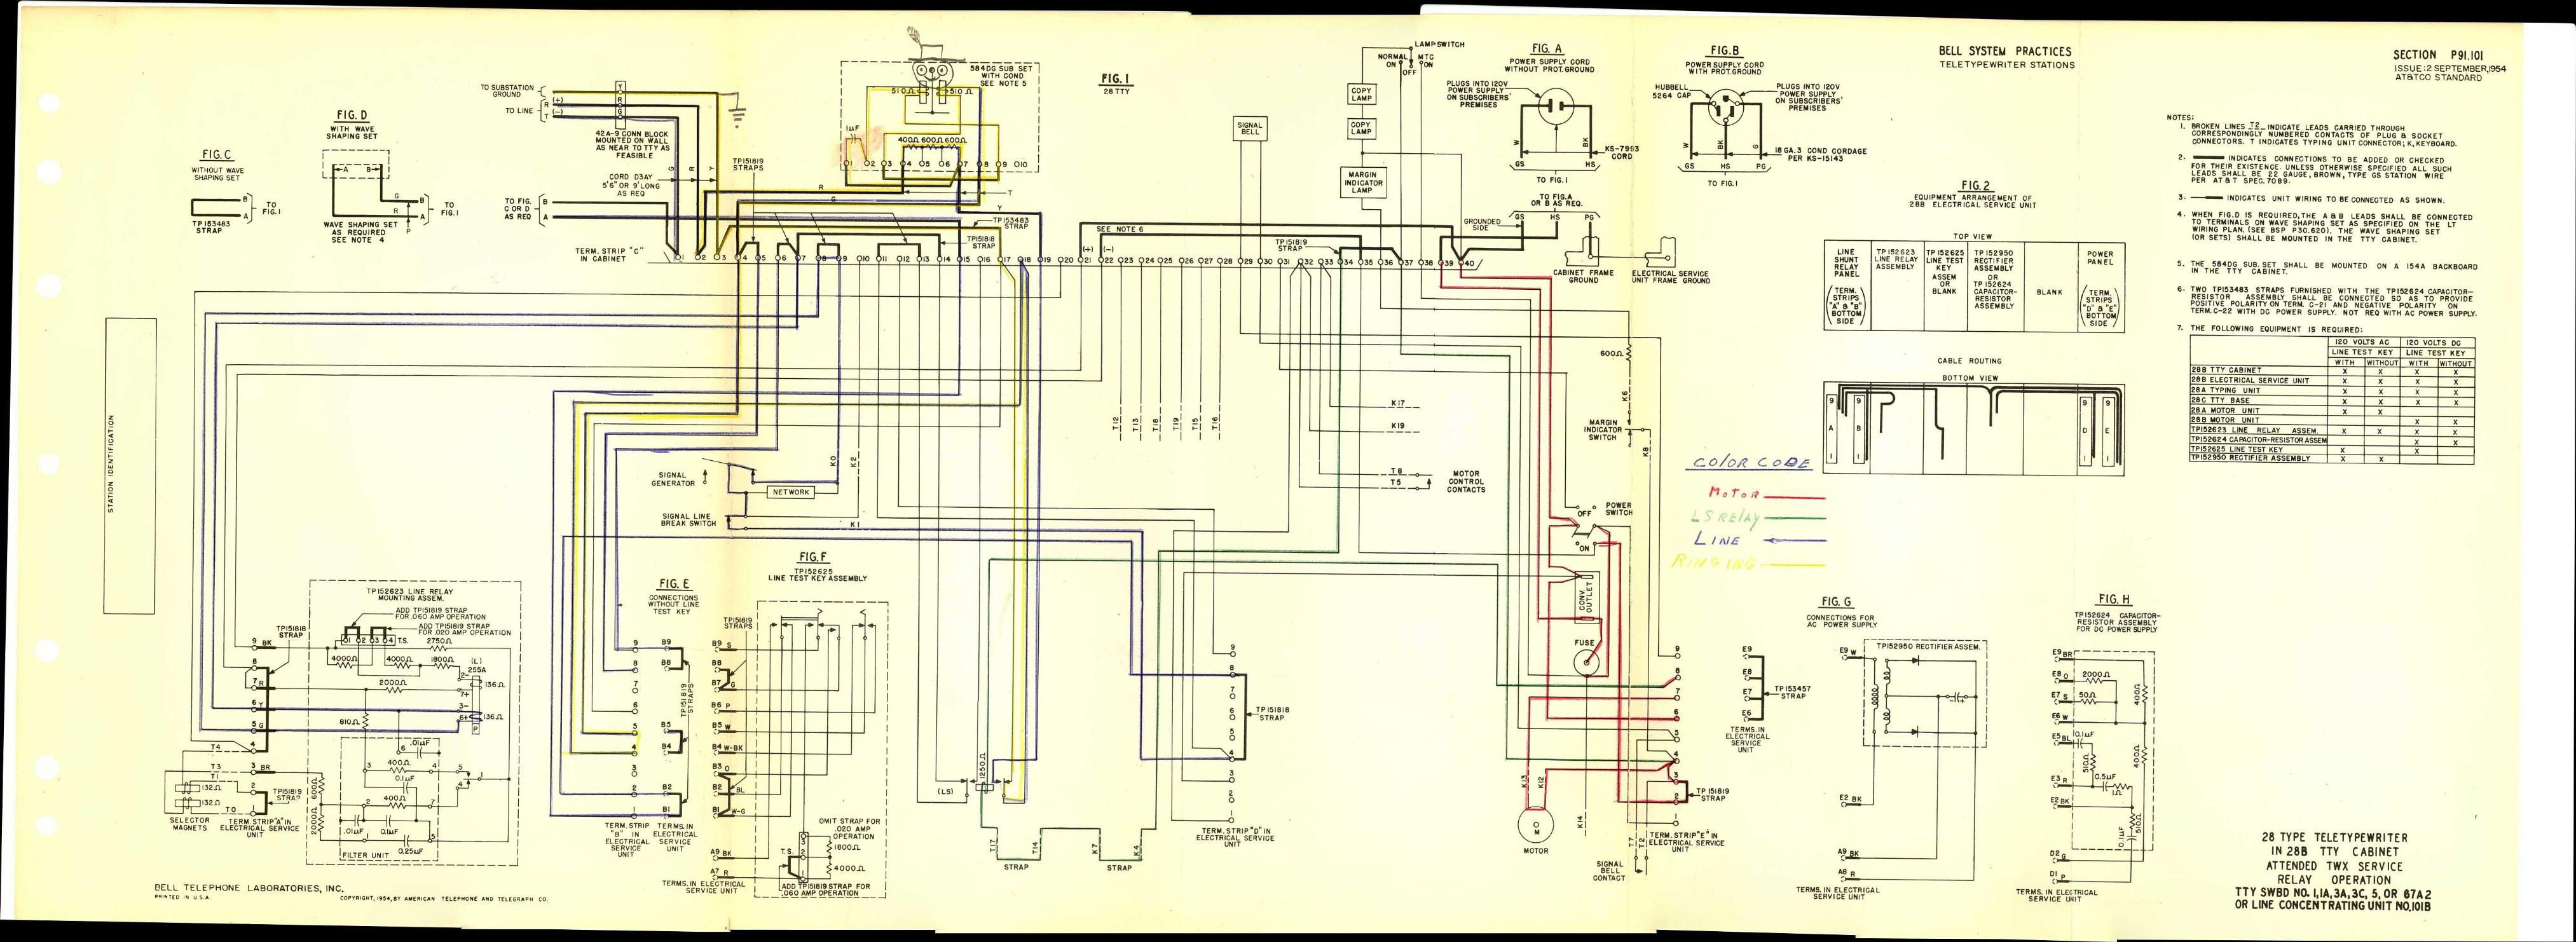 Teletype Wiring Diagrams And Schematics Western Electric 500 Diagram P91101 Link